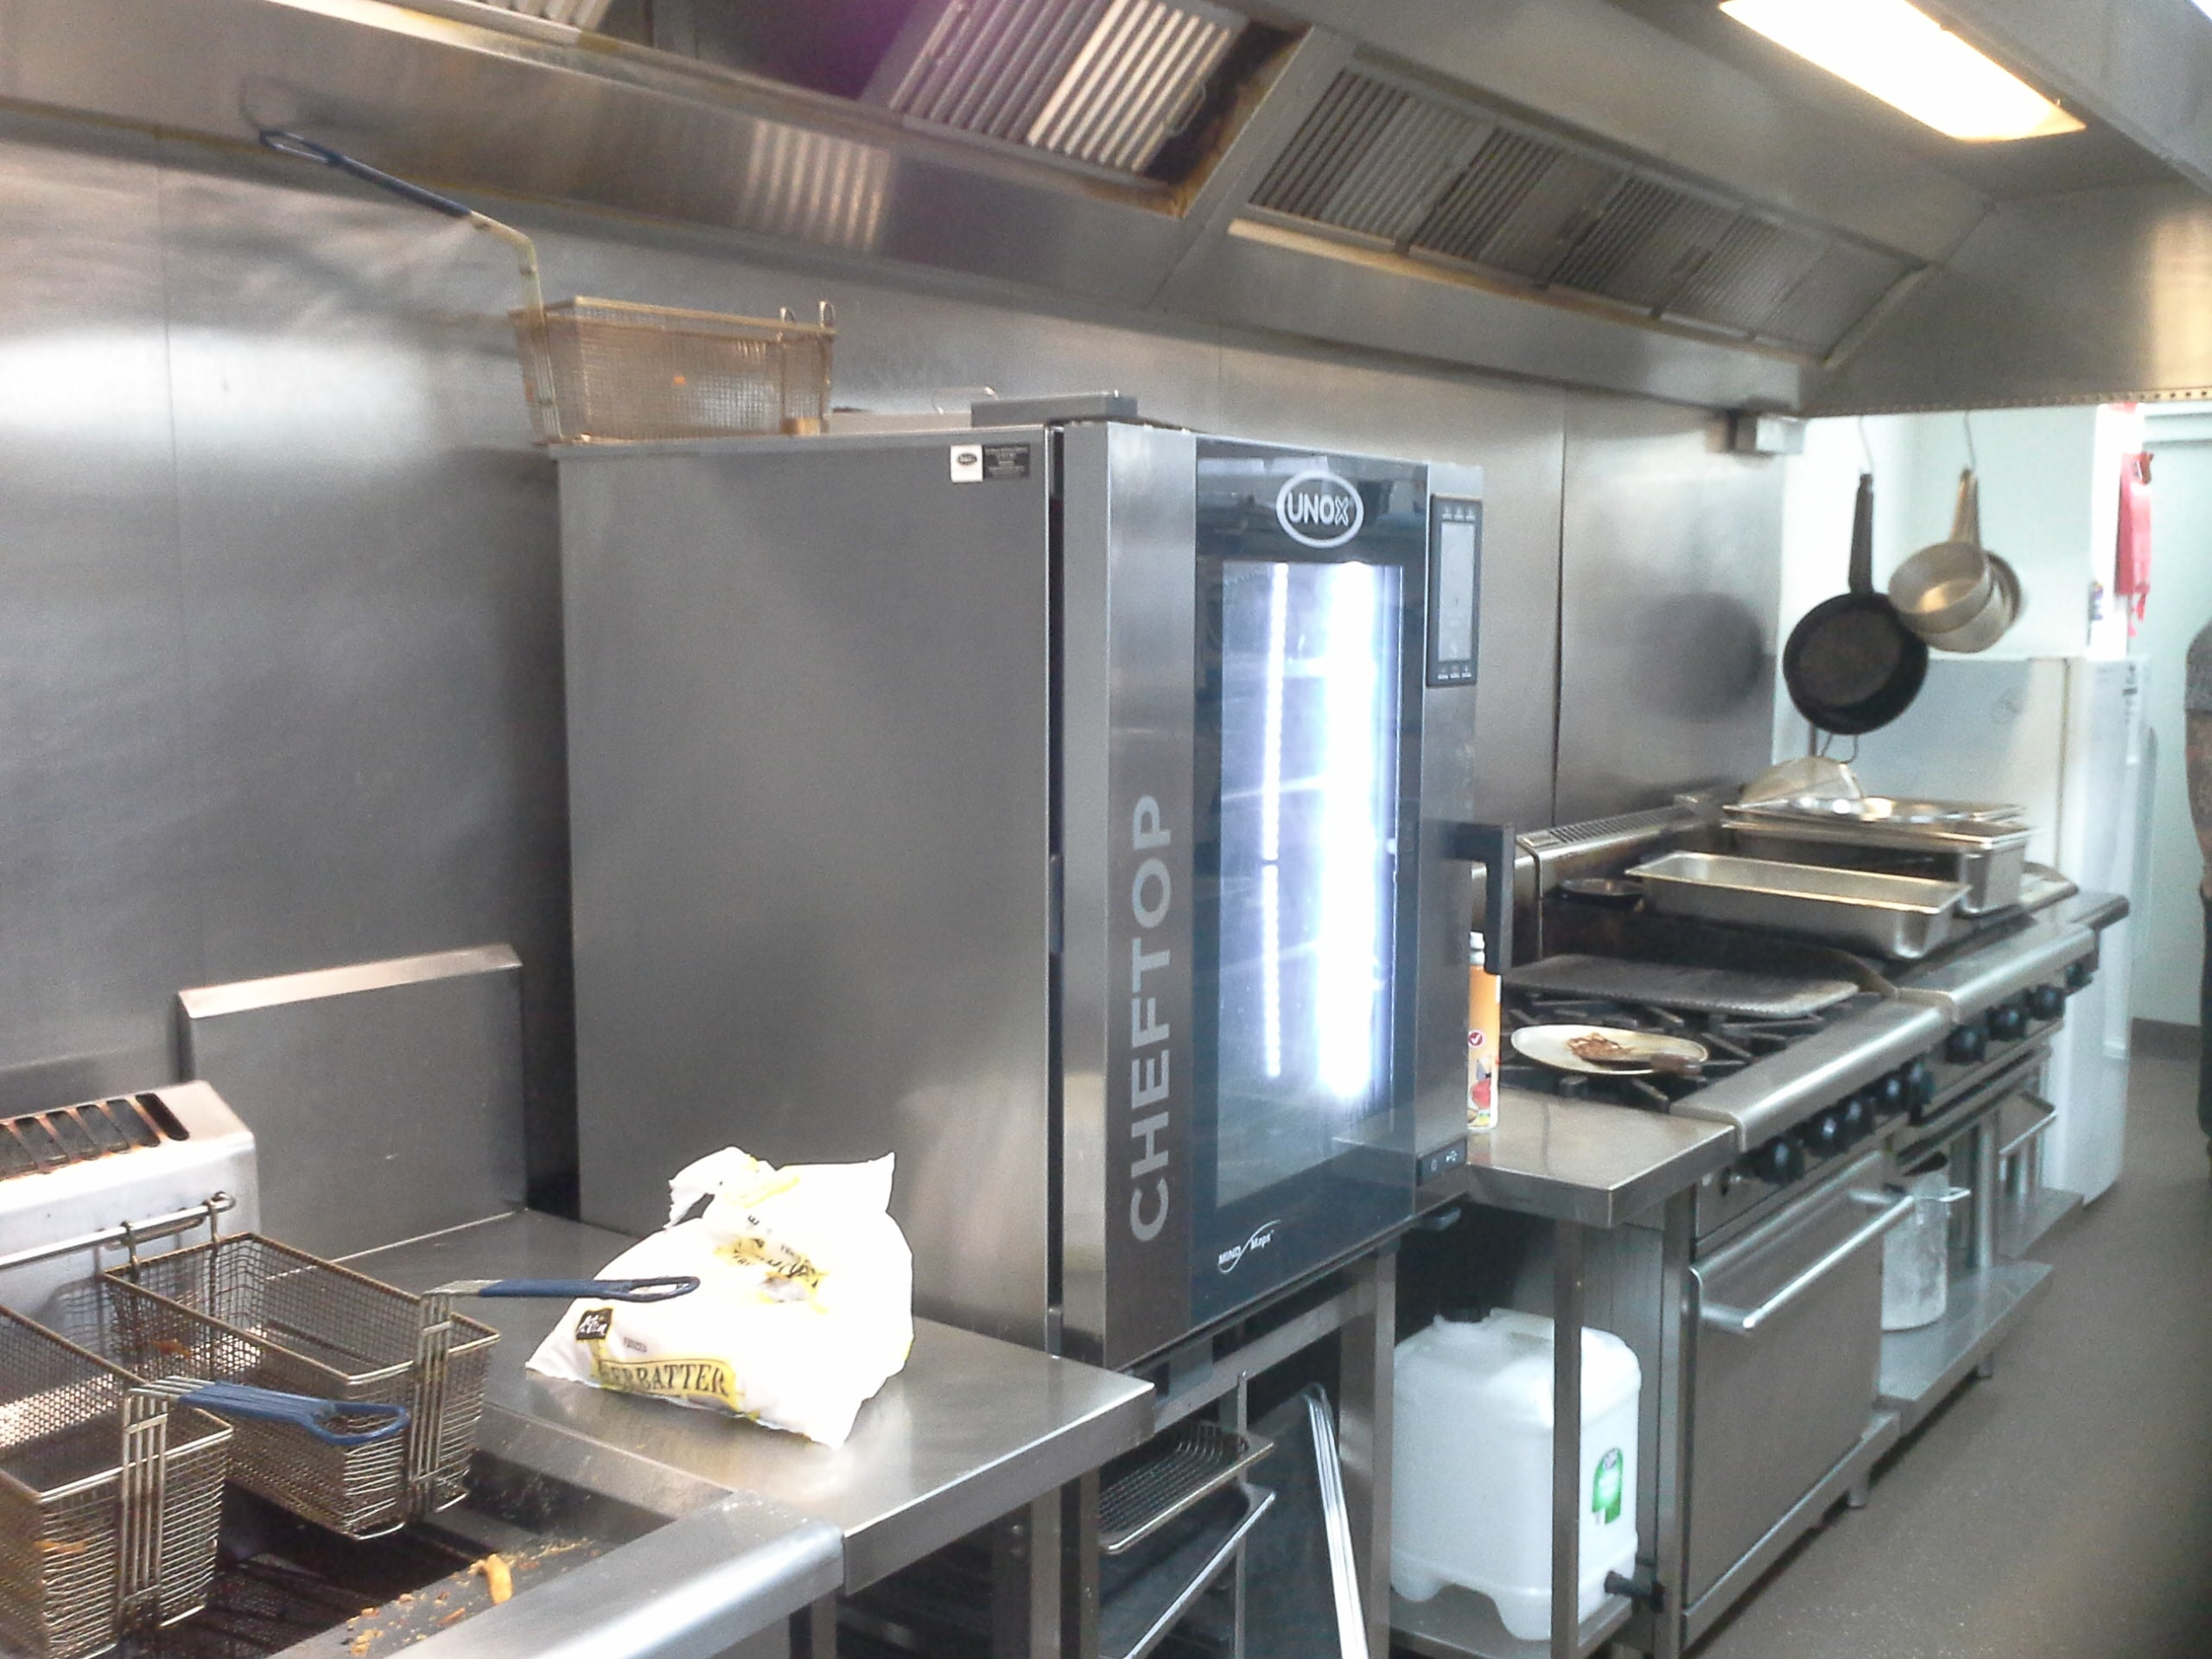 Kitchen commercial kitchen equipment general hotel amp restaurant with - Commercial Kitchen Bar Equipment Promotion 3 About Us